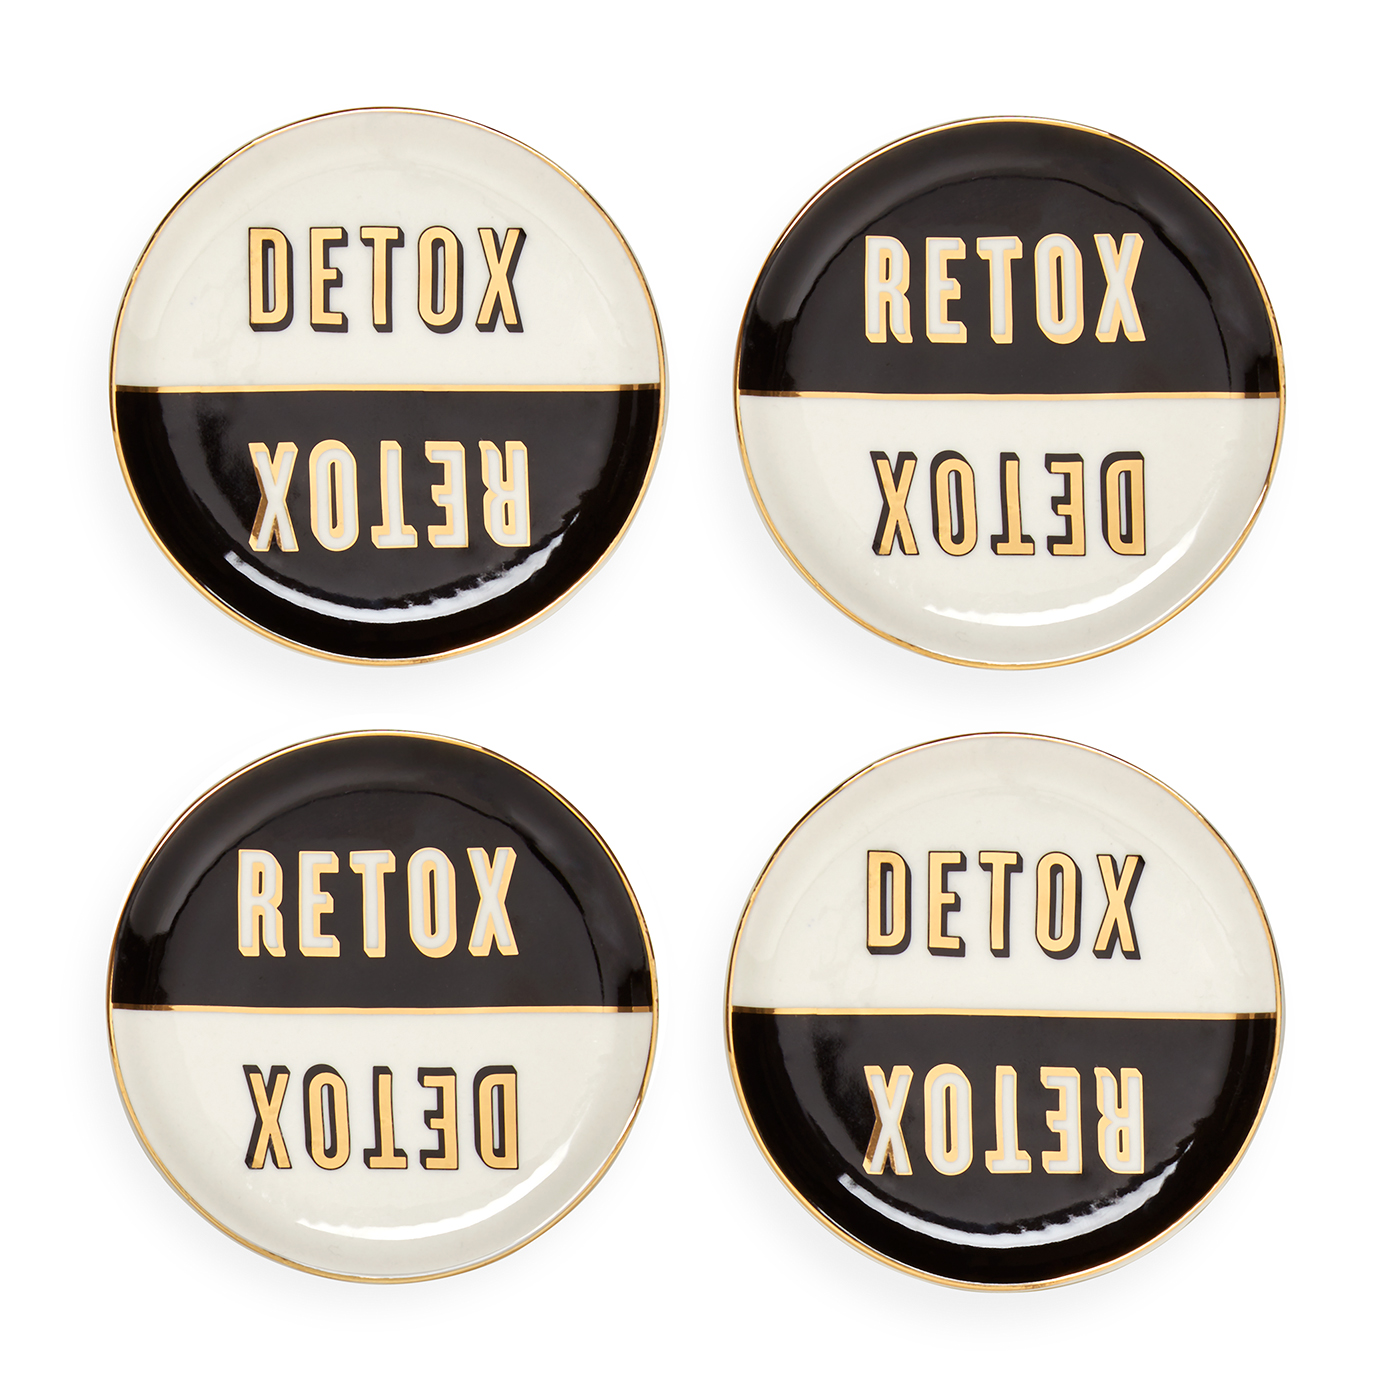 A set of four coasters in black and gold that say Retox and Detox on them